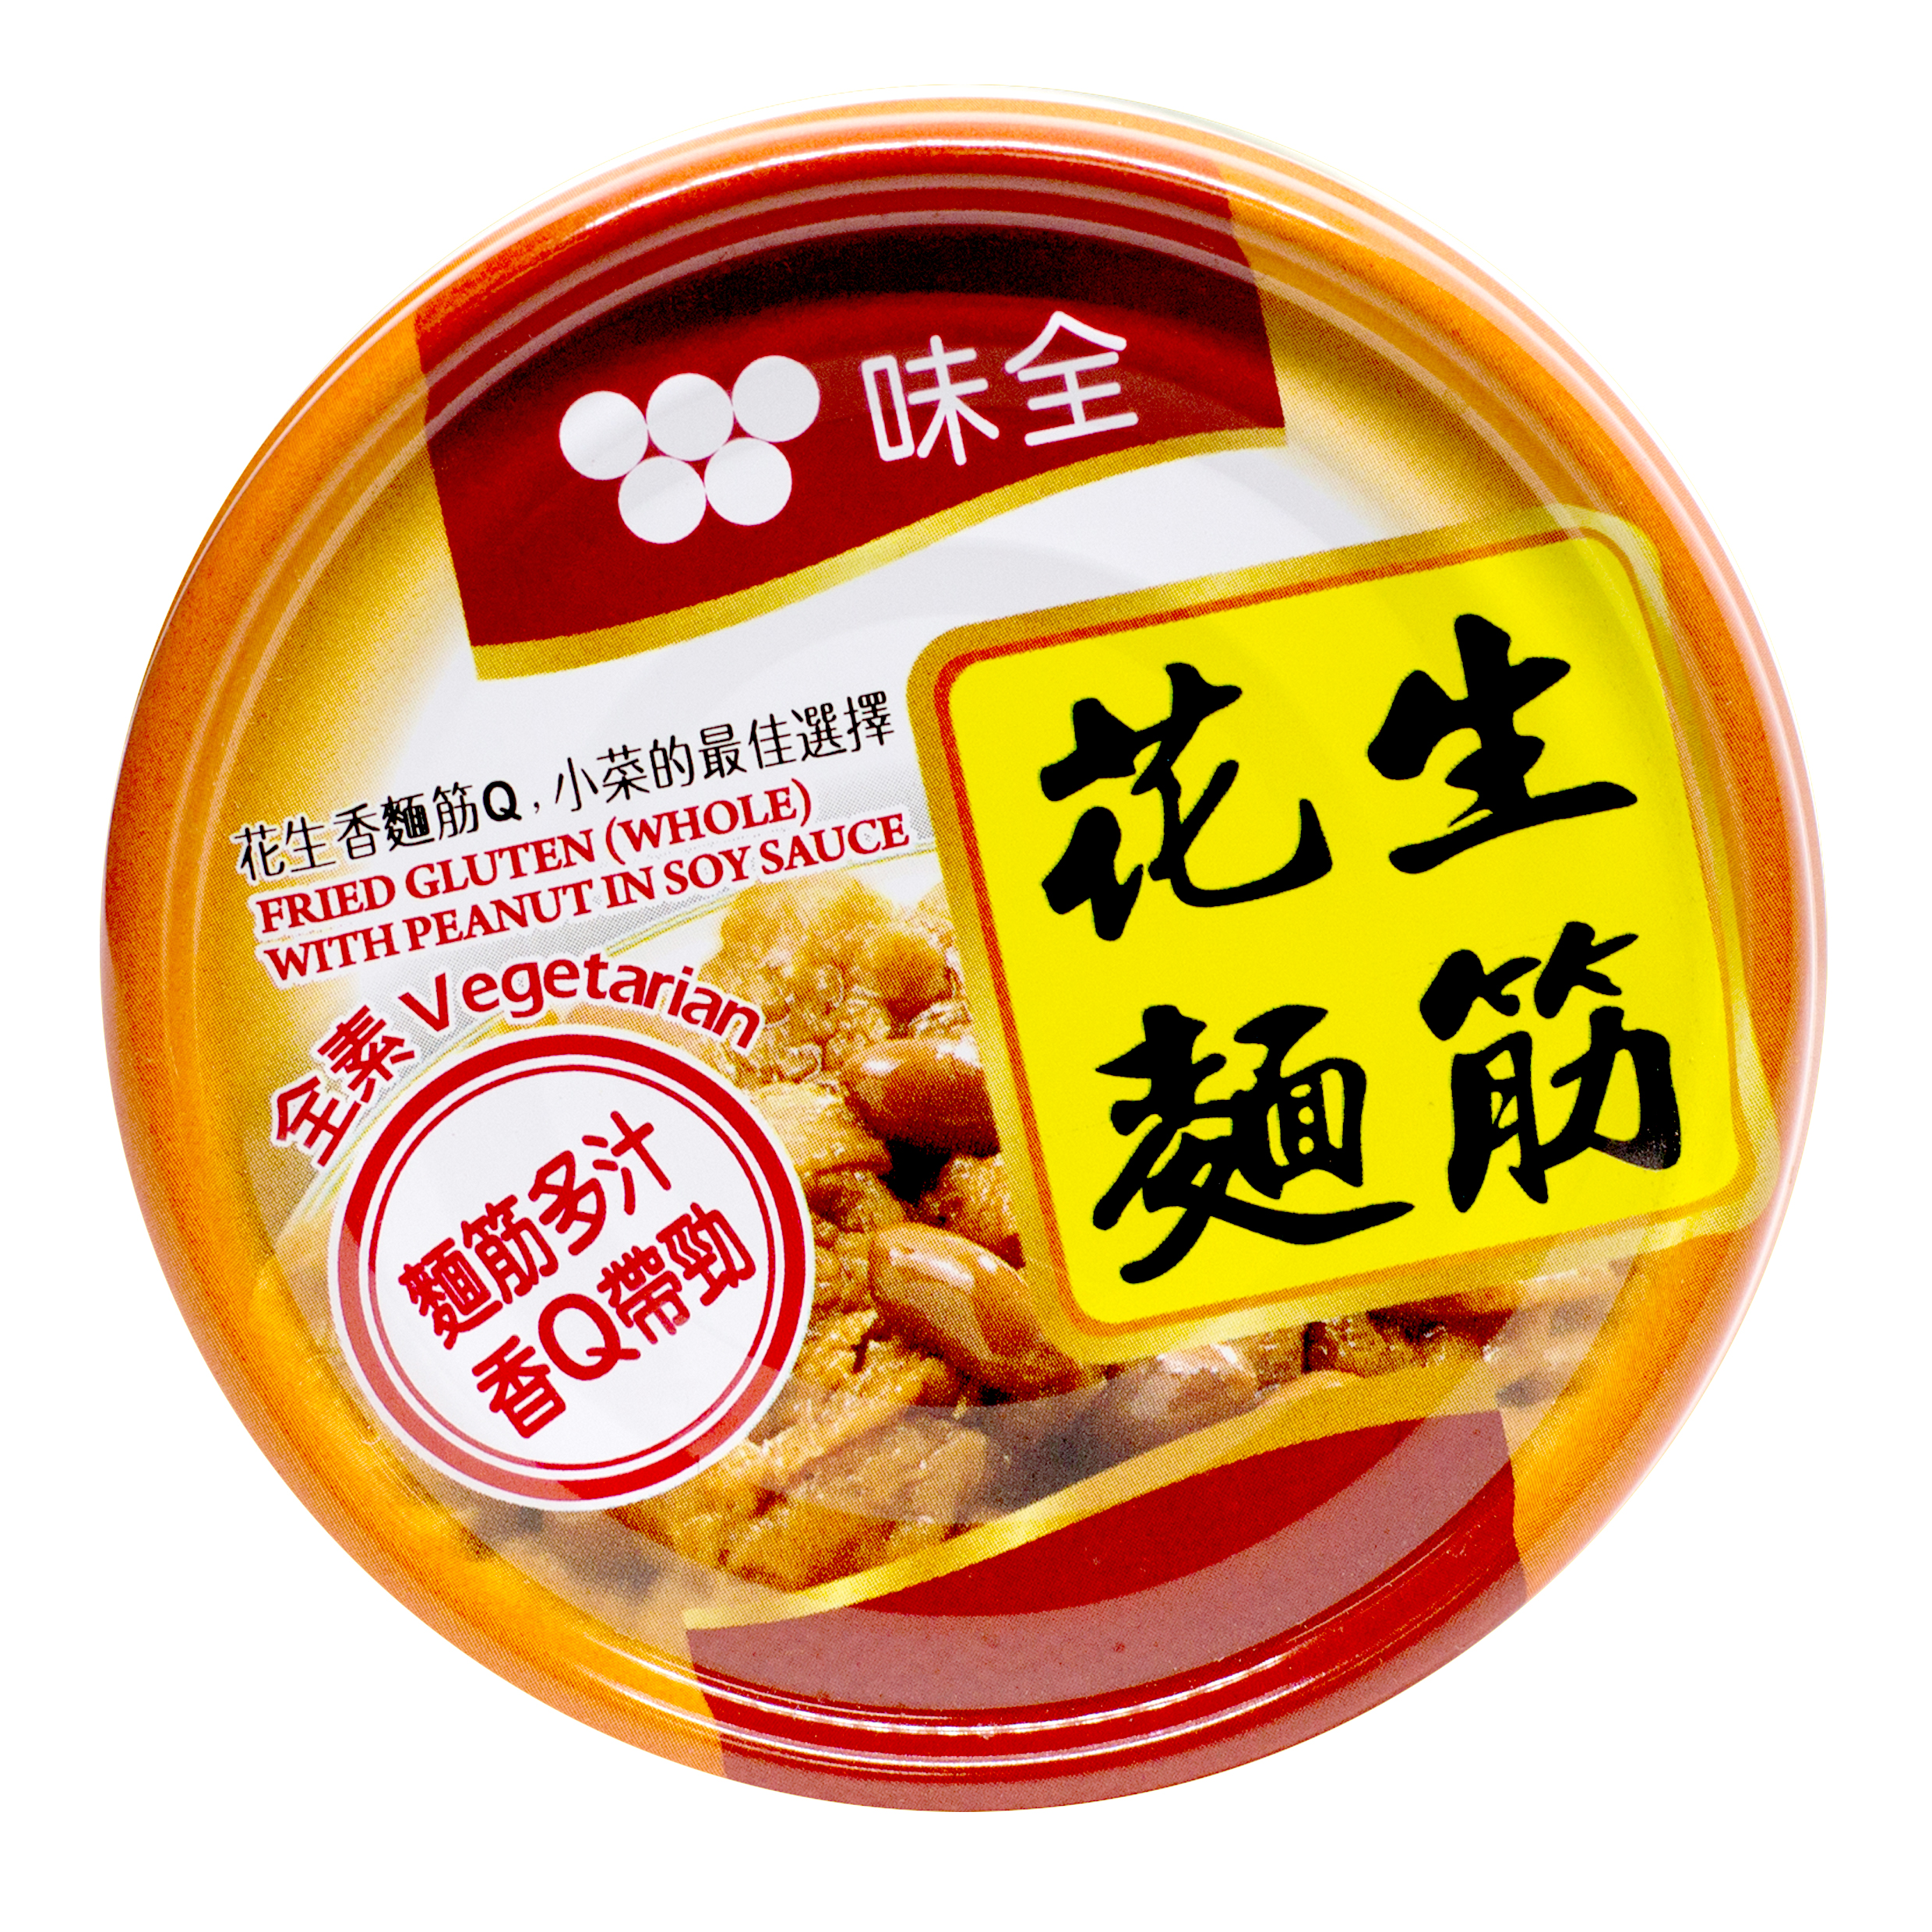 Image Fried Gluten With Peanuts 味全 - 花生面筋 170grams